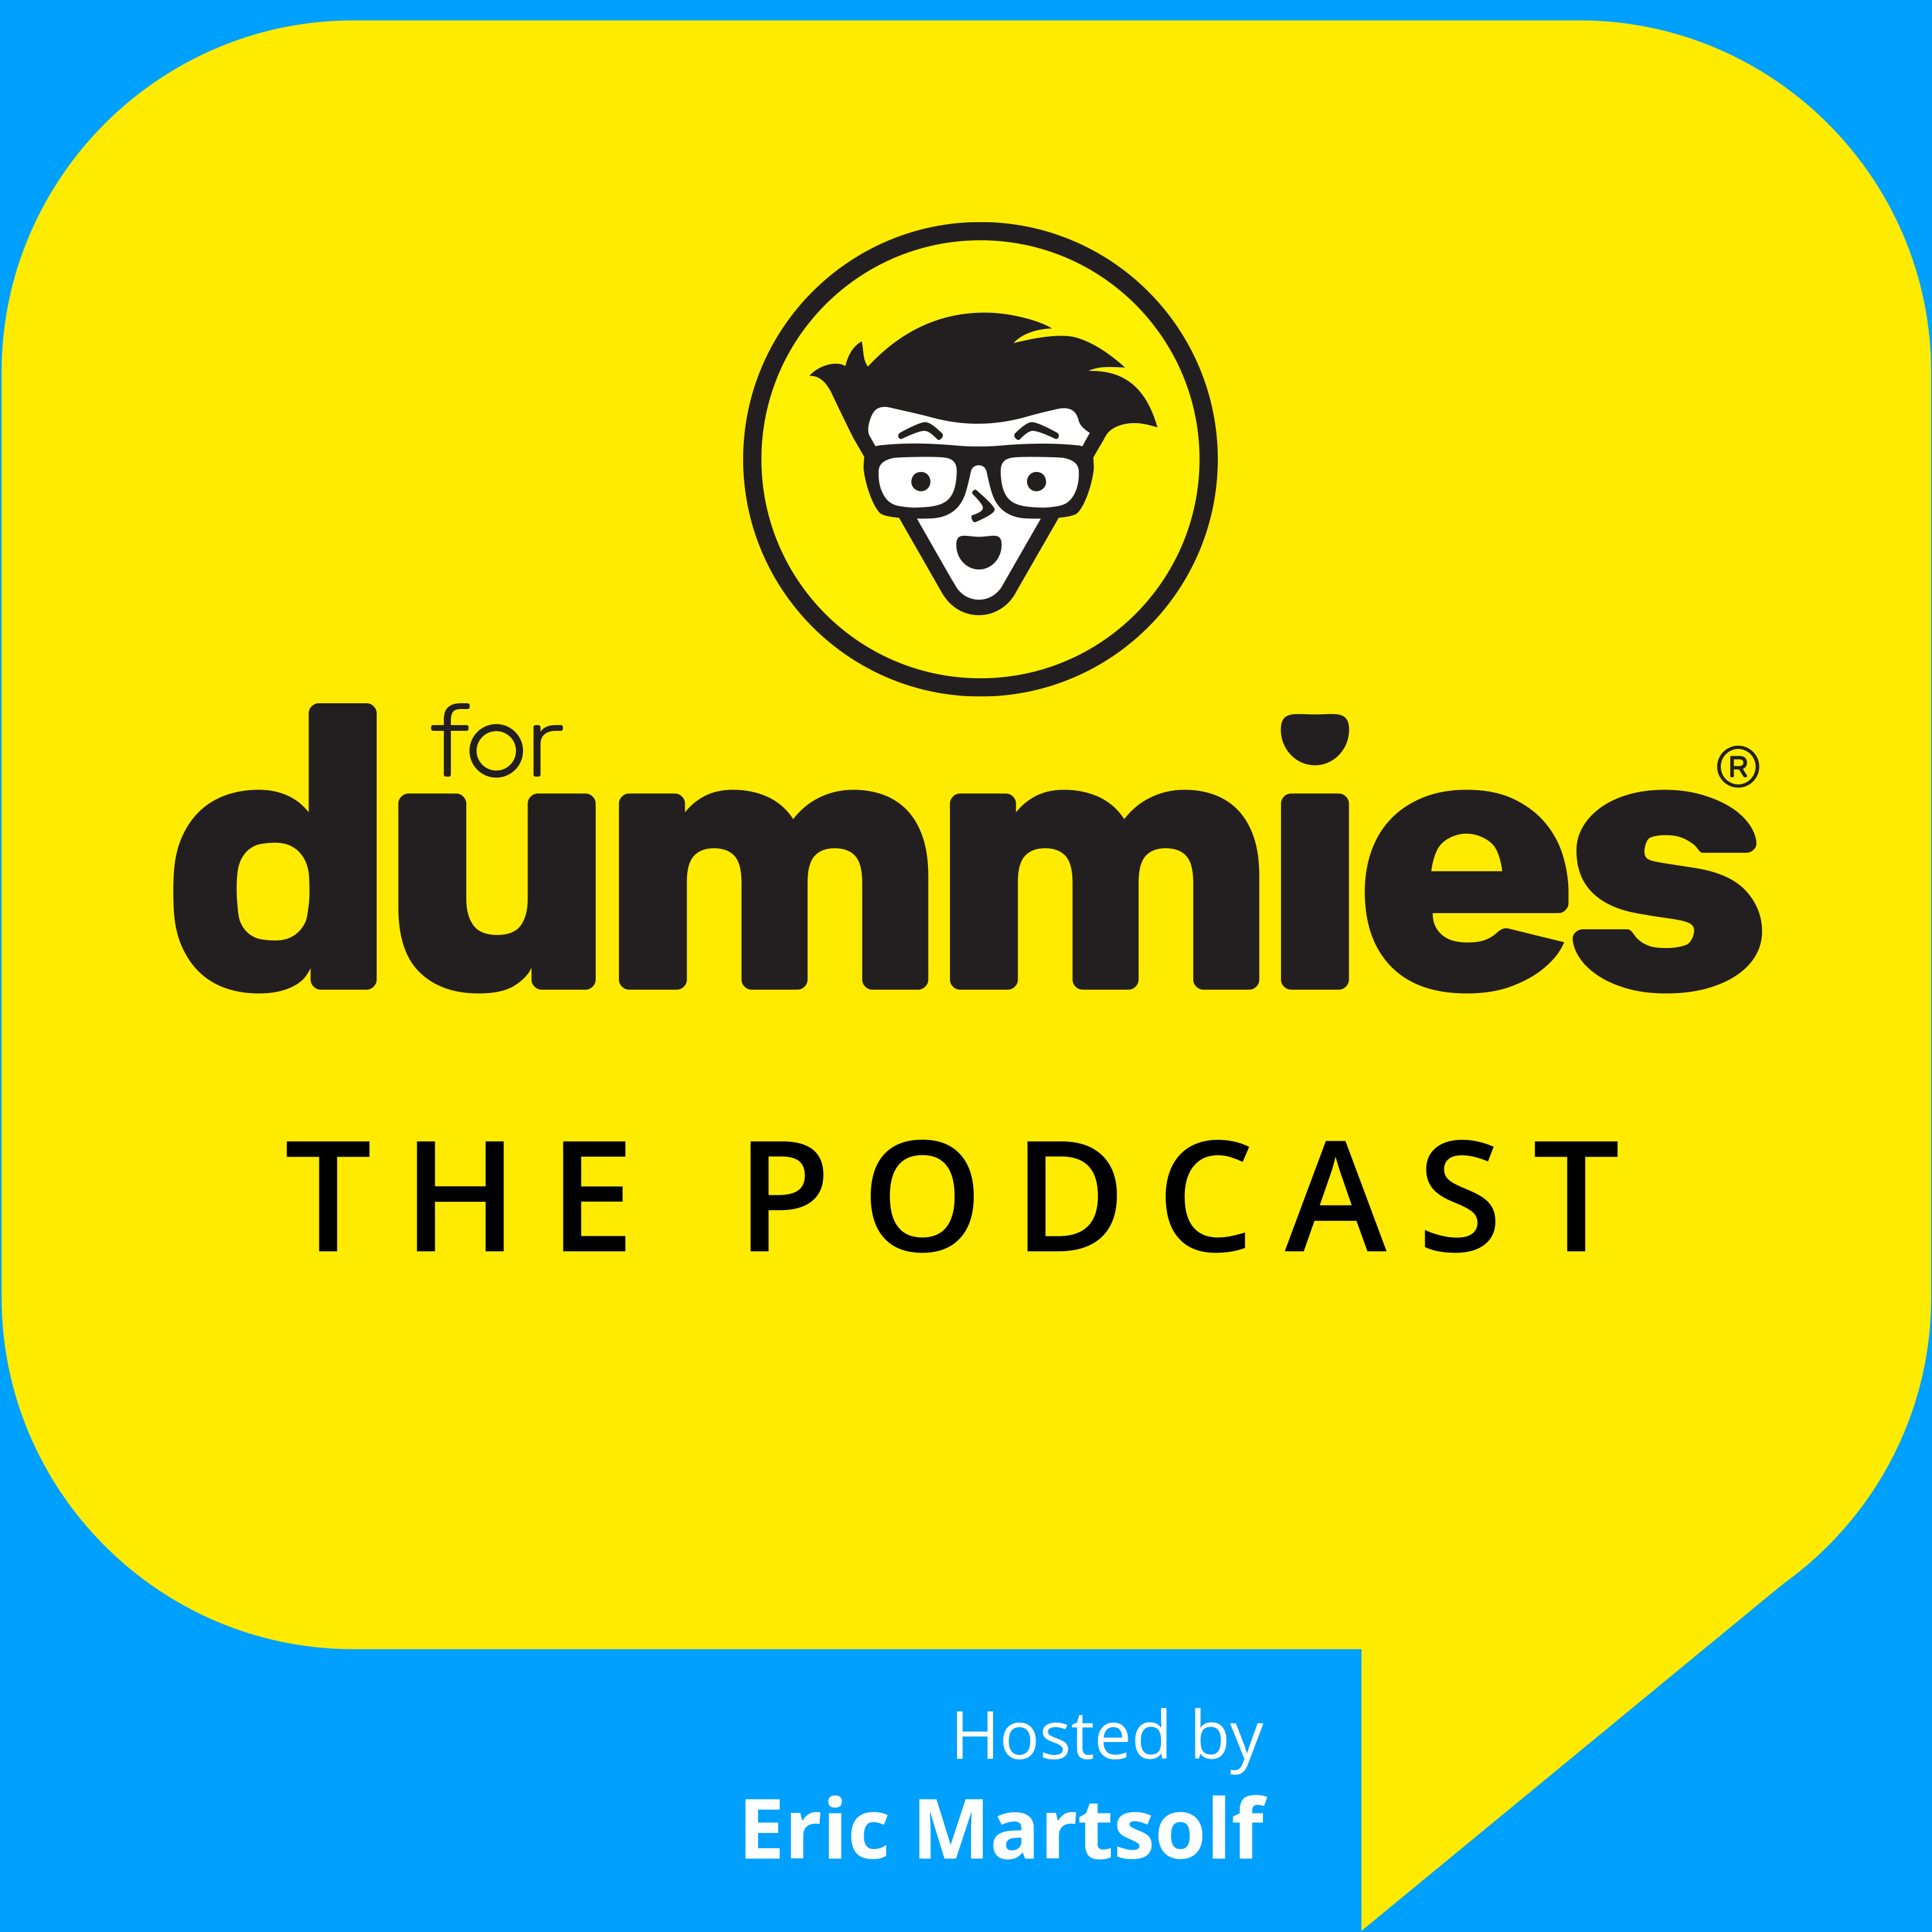 FOR DUMMIES: The Podcast show art